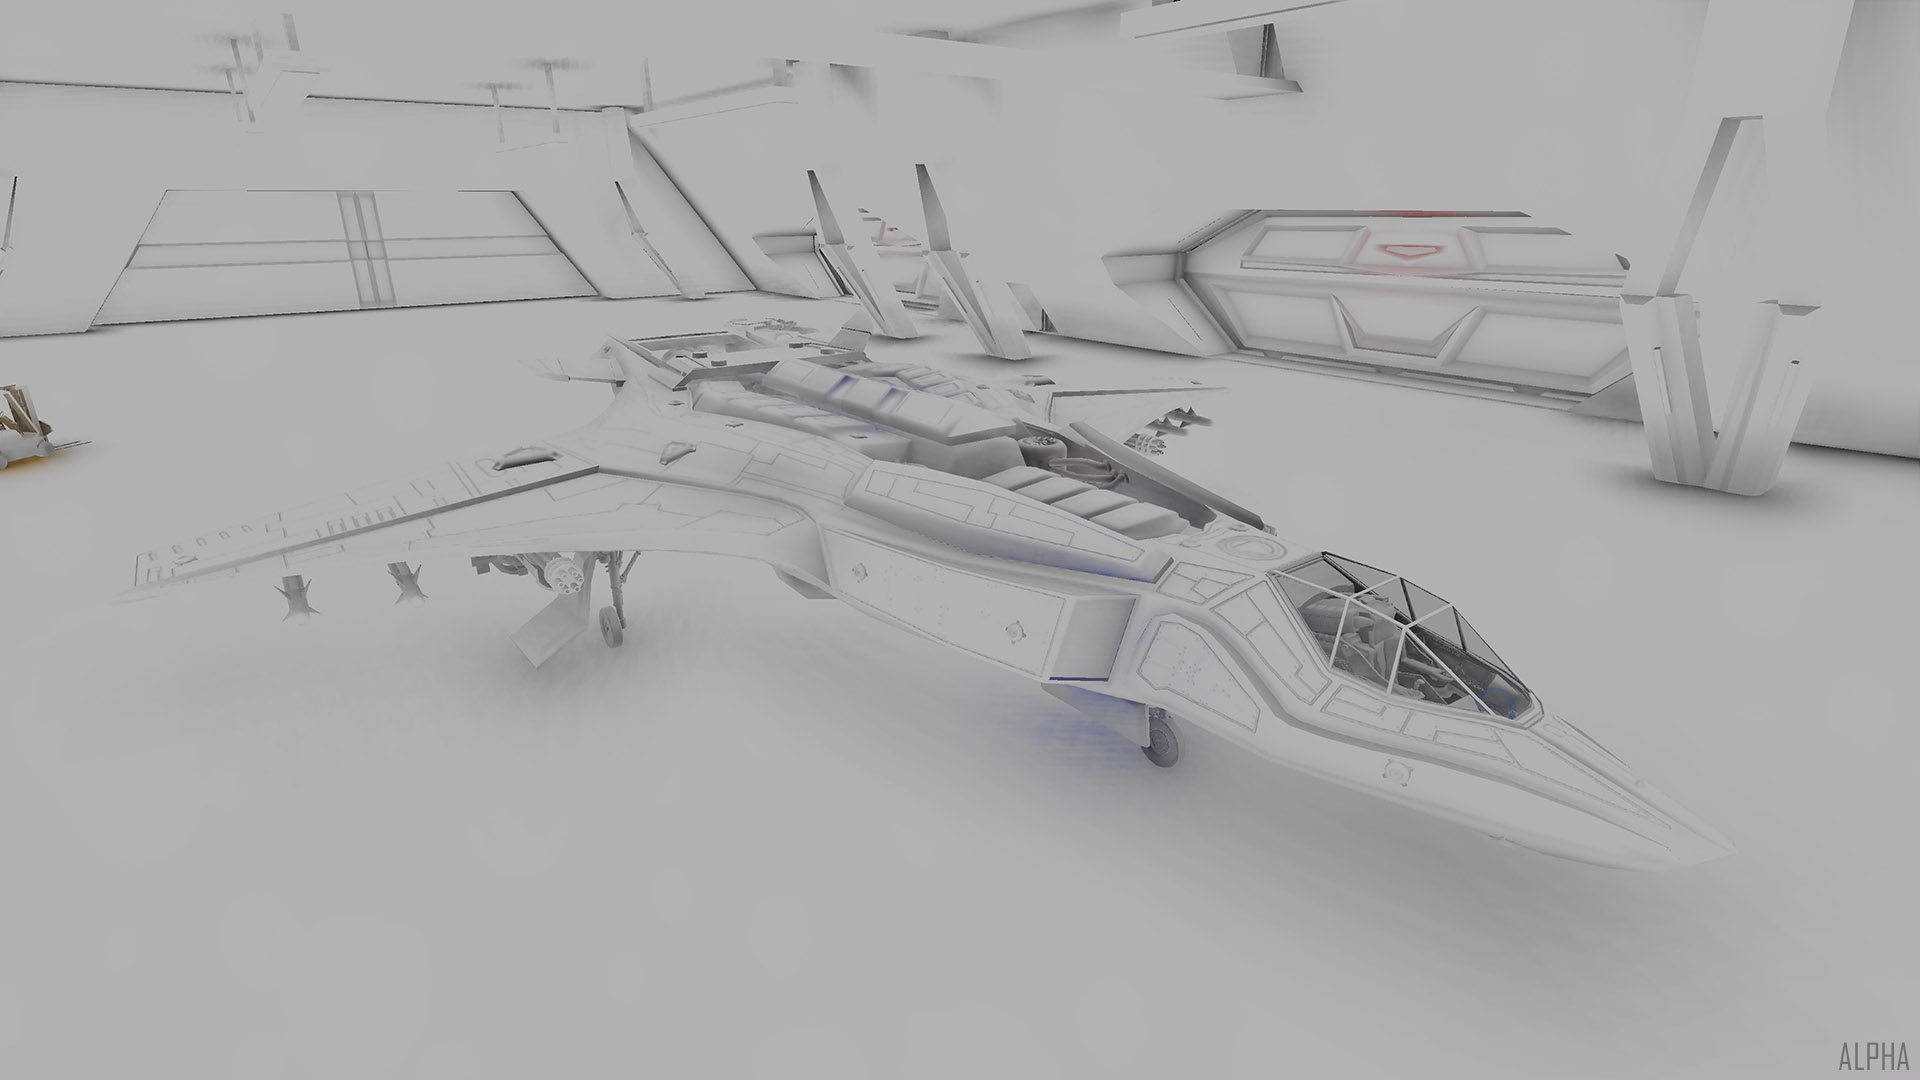 Raw Ambient Occlusion